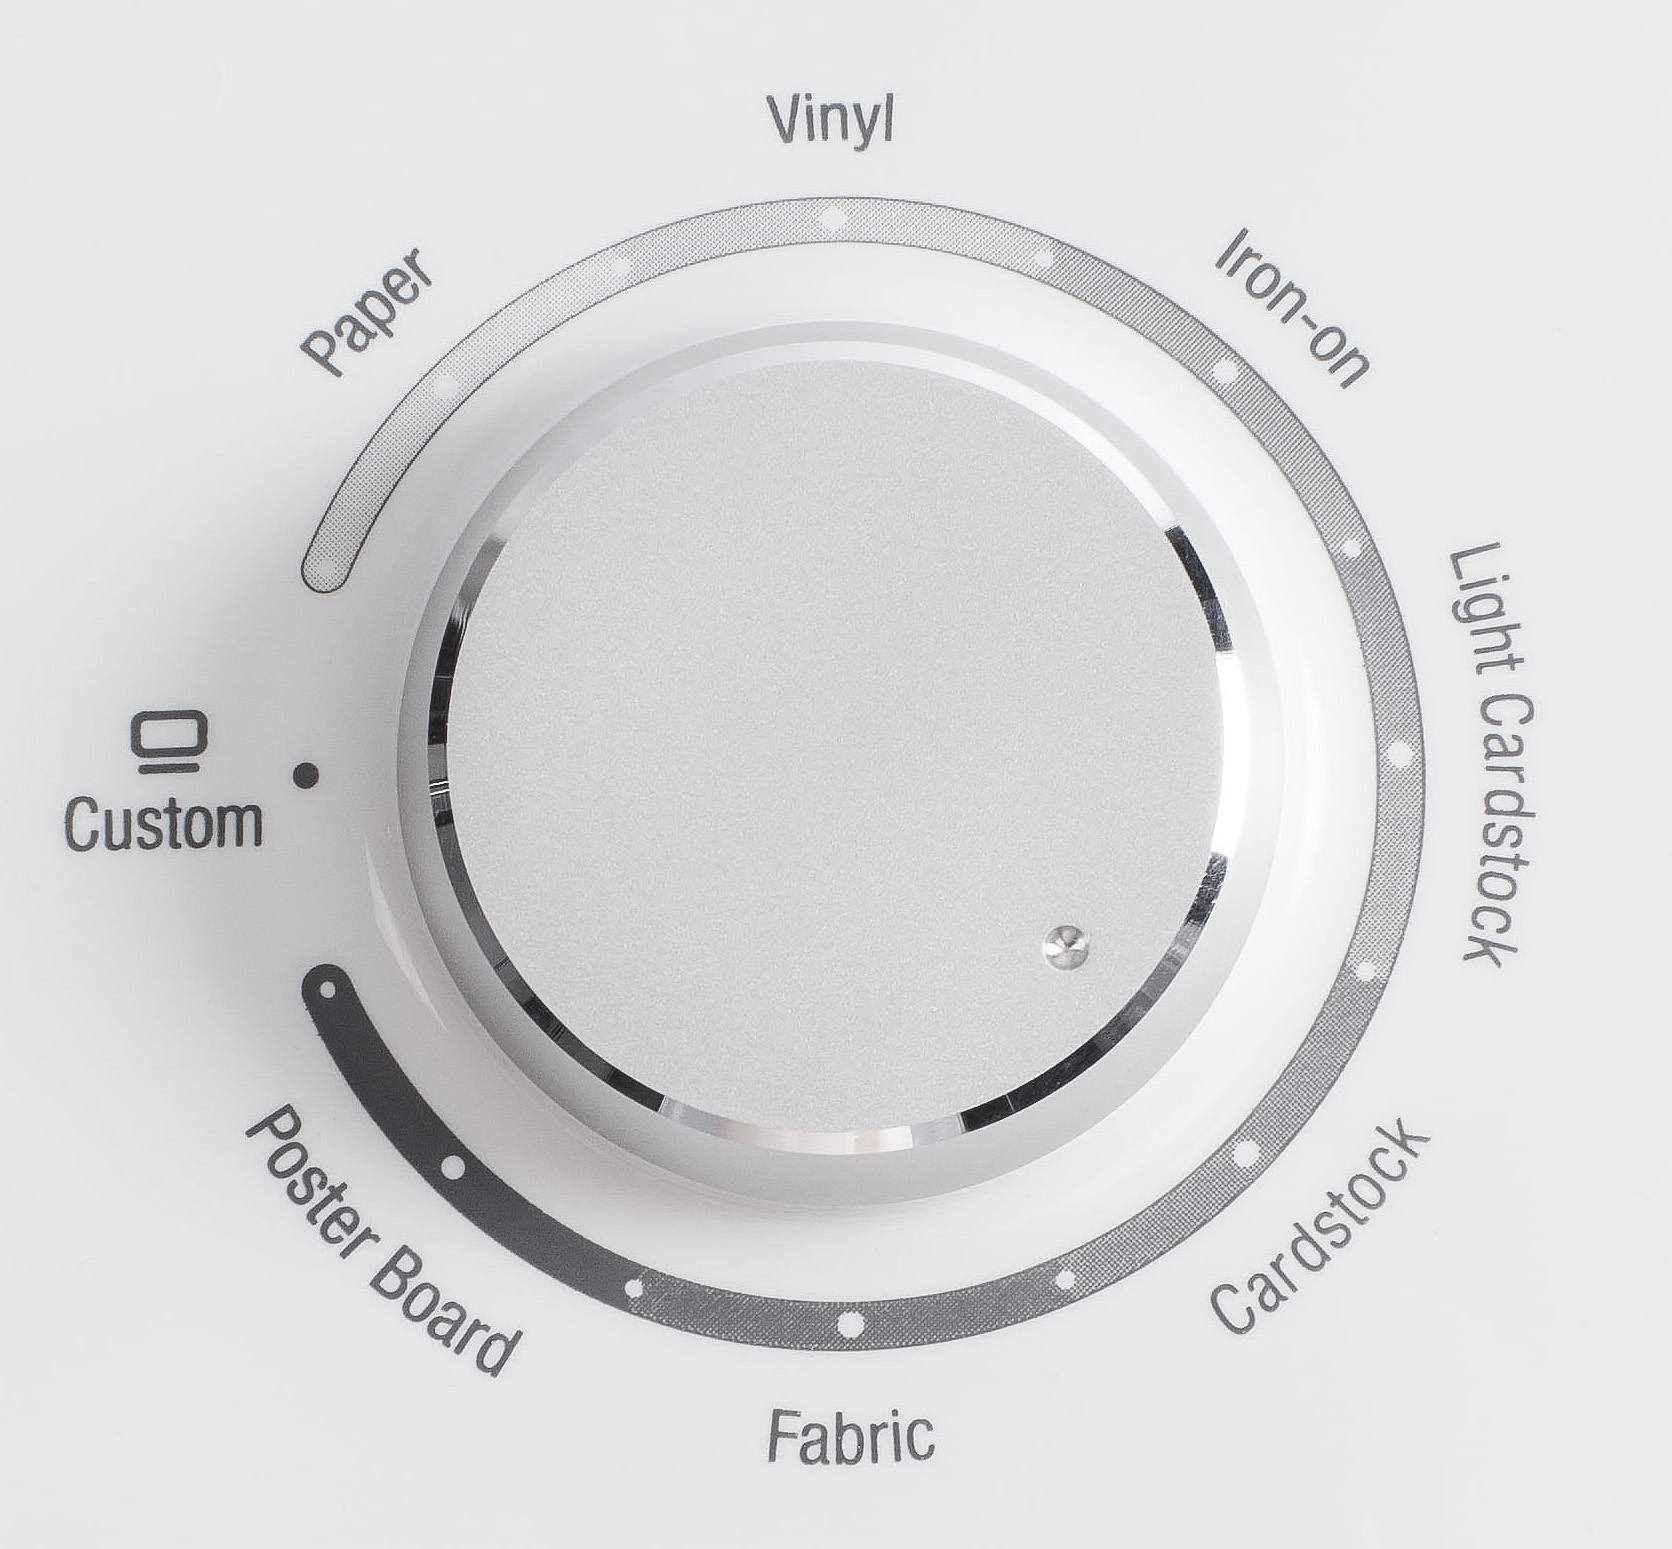 Cricut Explore - SmartSet Dial! No need to worry about what settings to choose!